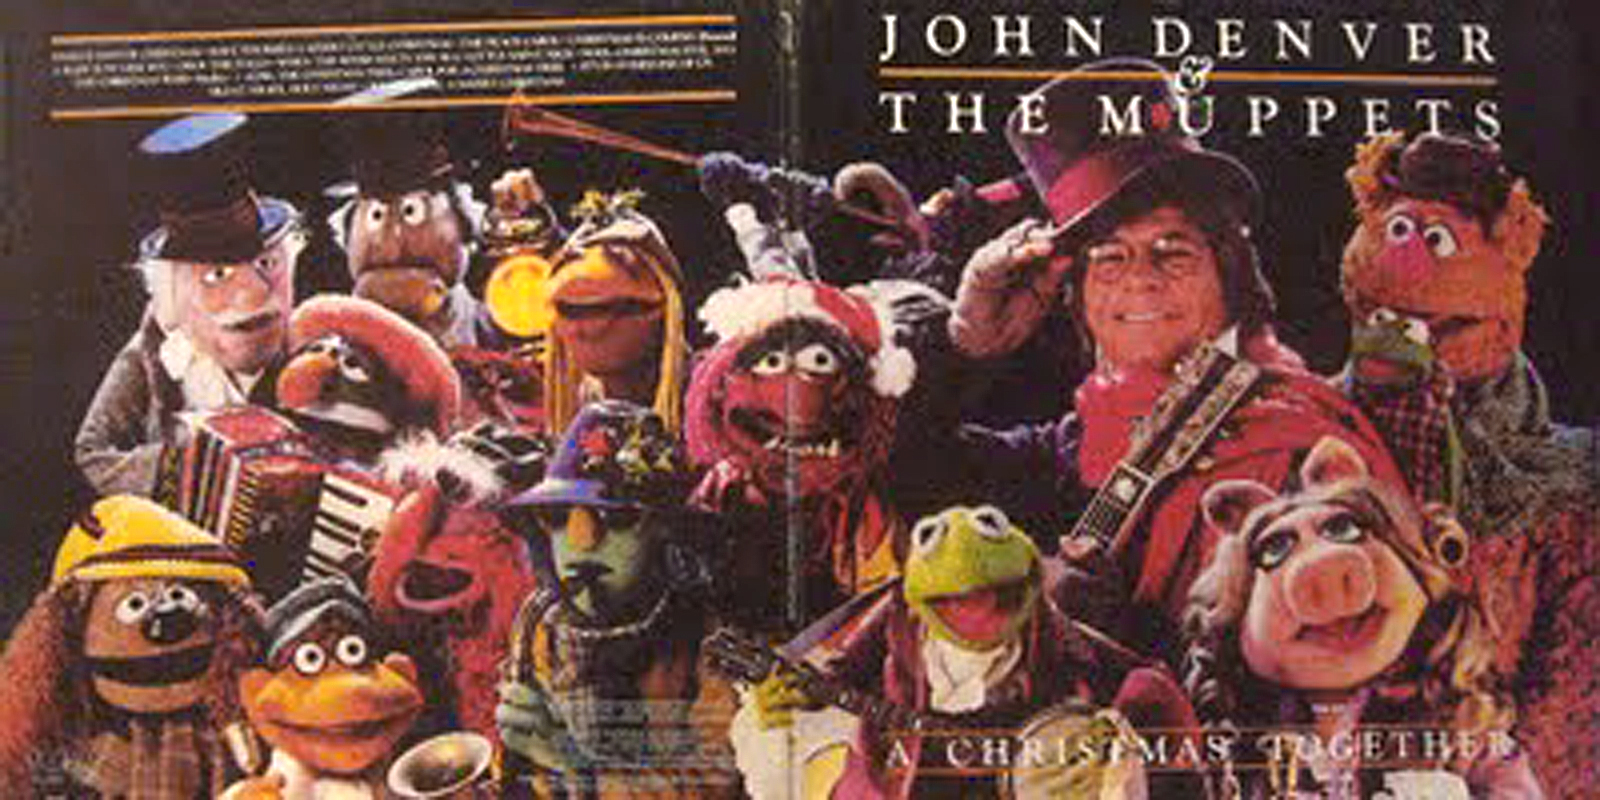 25 Reviews of Christmas #16 - John Denver and the Muppets deliver ...